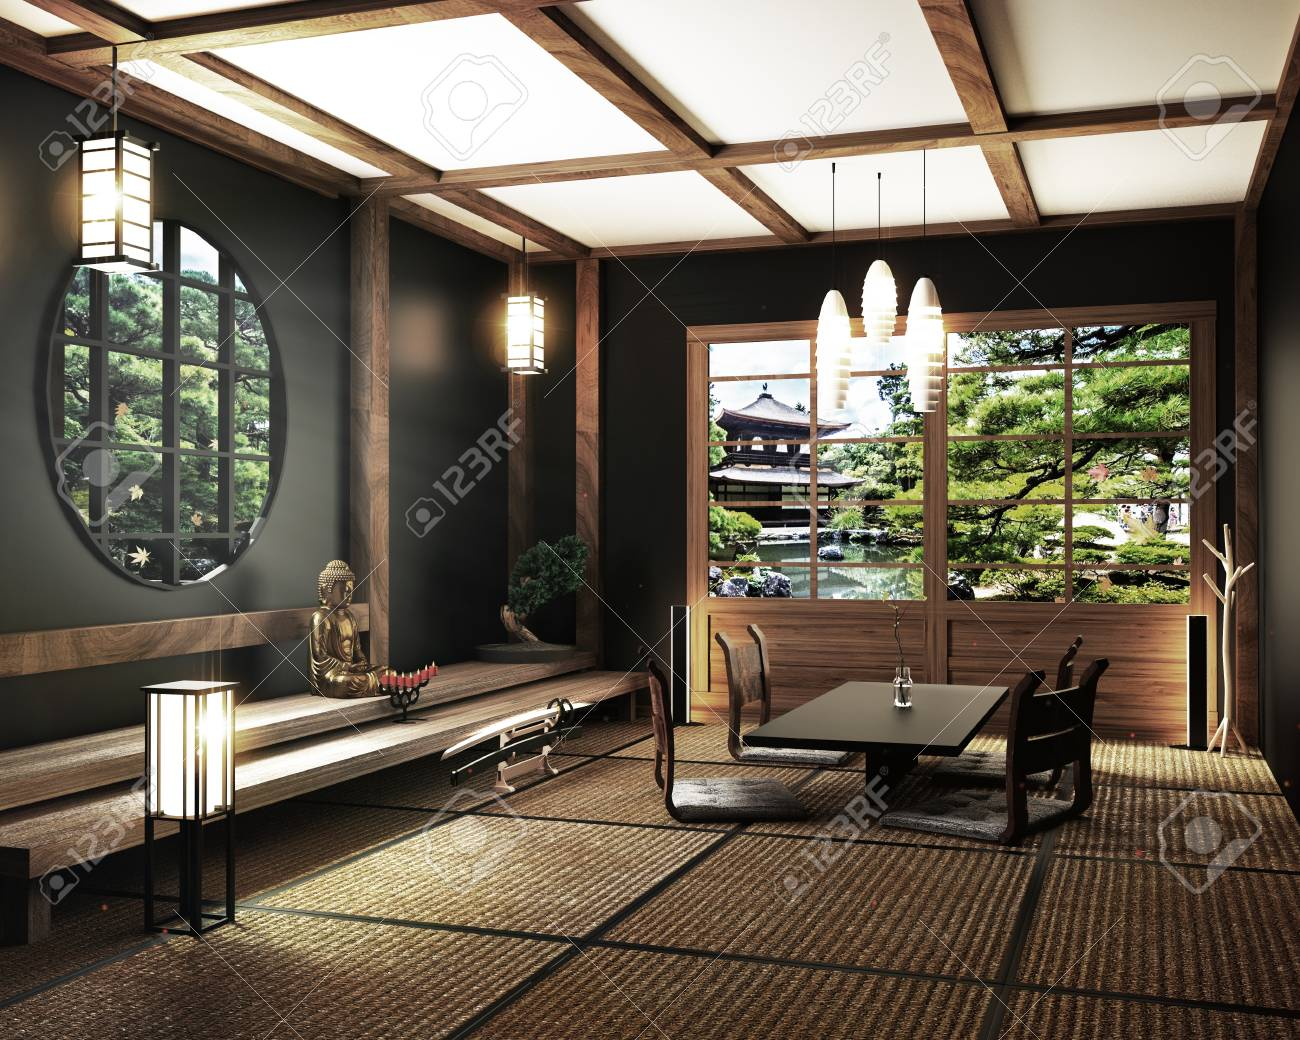 Interior Design Zen Living Room With Table Katana Sword Lamp Stock Photo Picture And Royalty Free Image Image 113422154